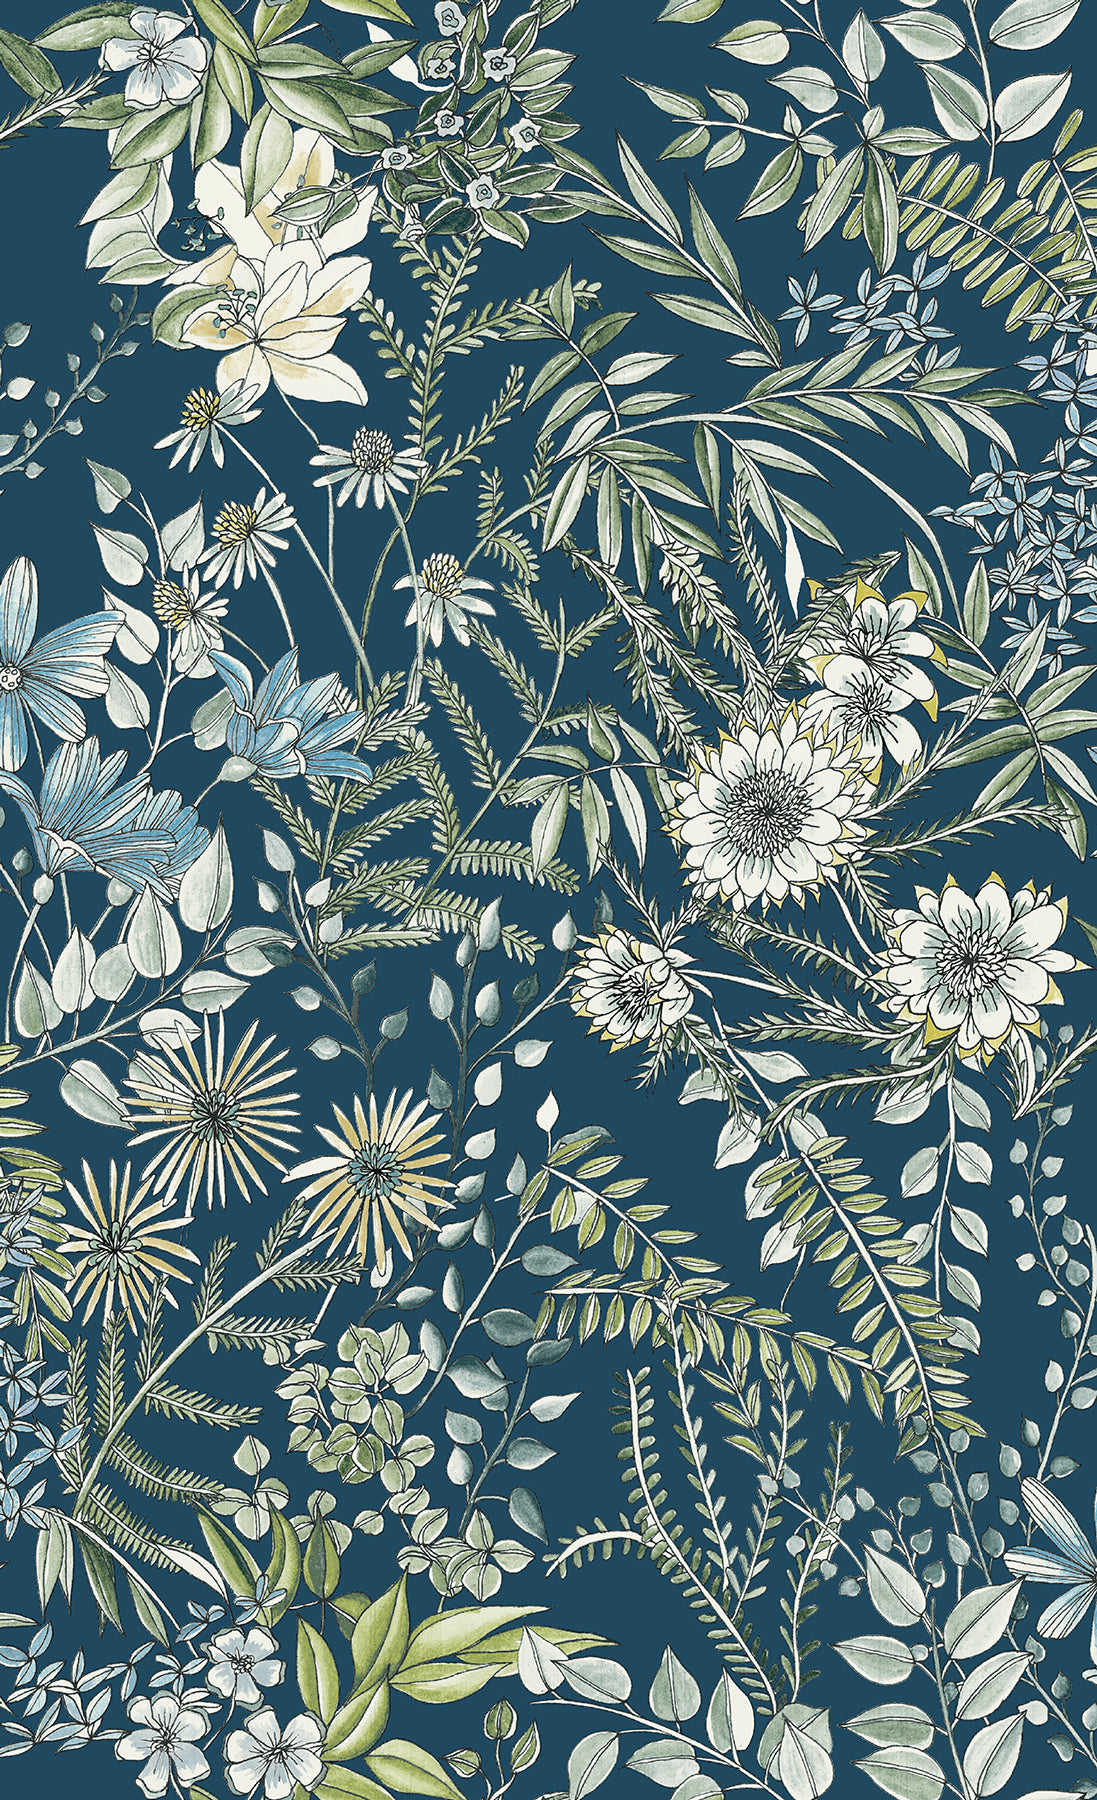 A Street Prints Full Bloom Navy Blue Floral Wallpaper D Marie